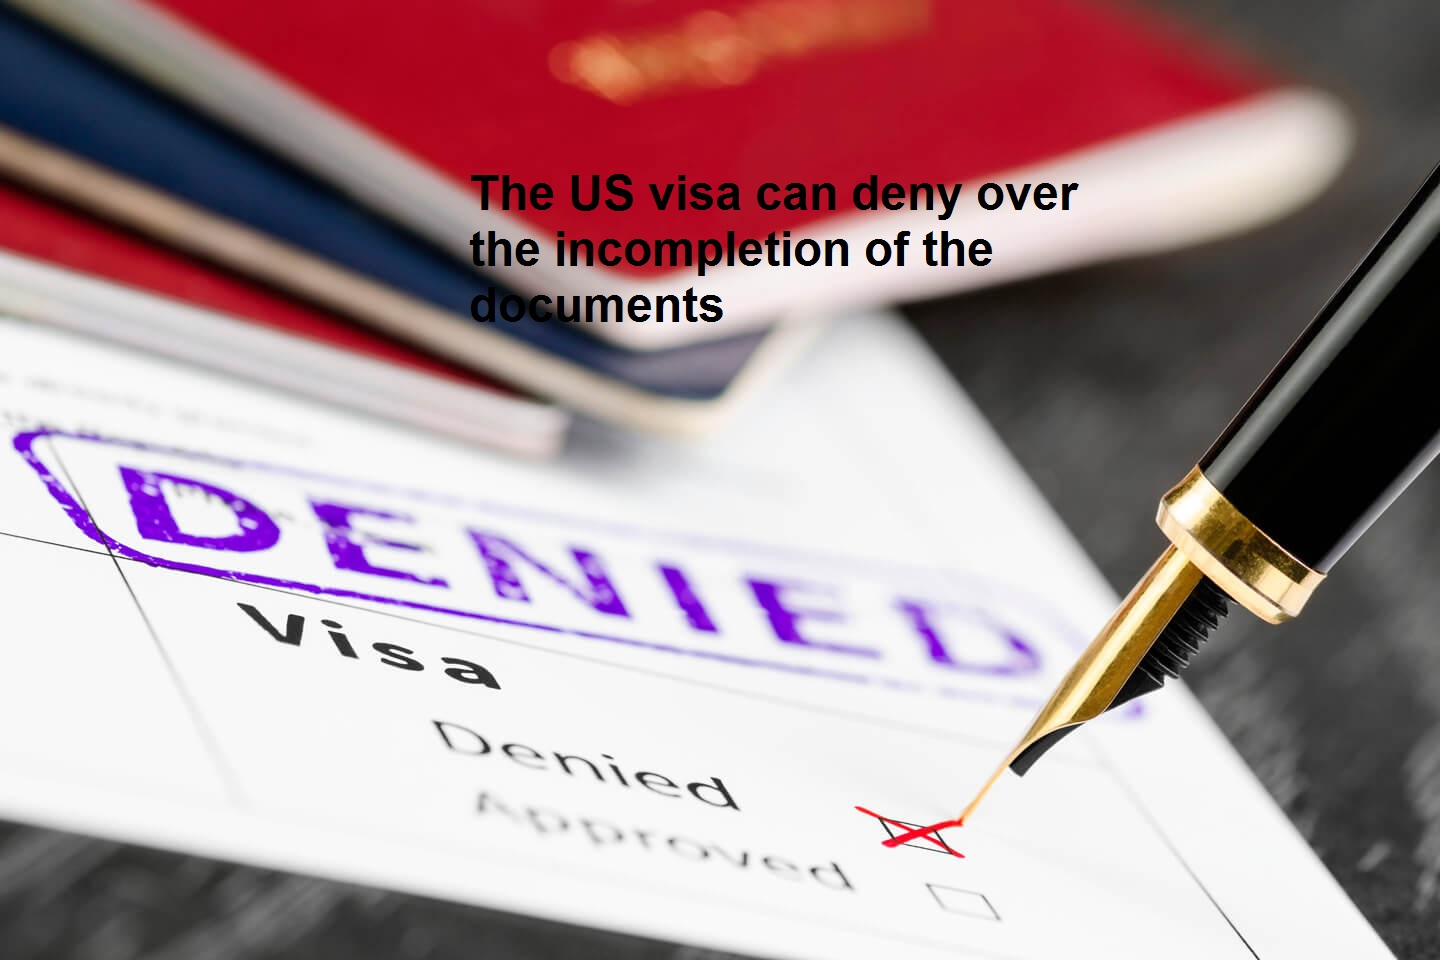 The US visa can deny over the incompletion of the documents